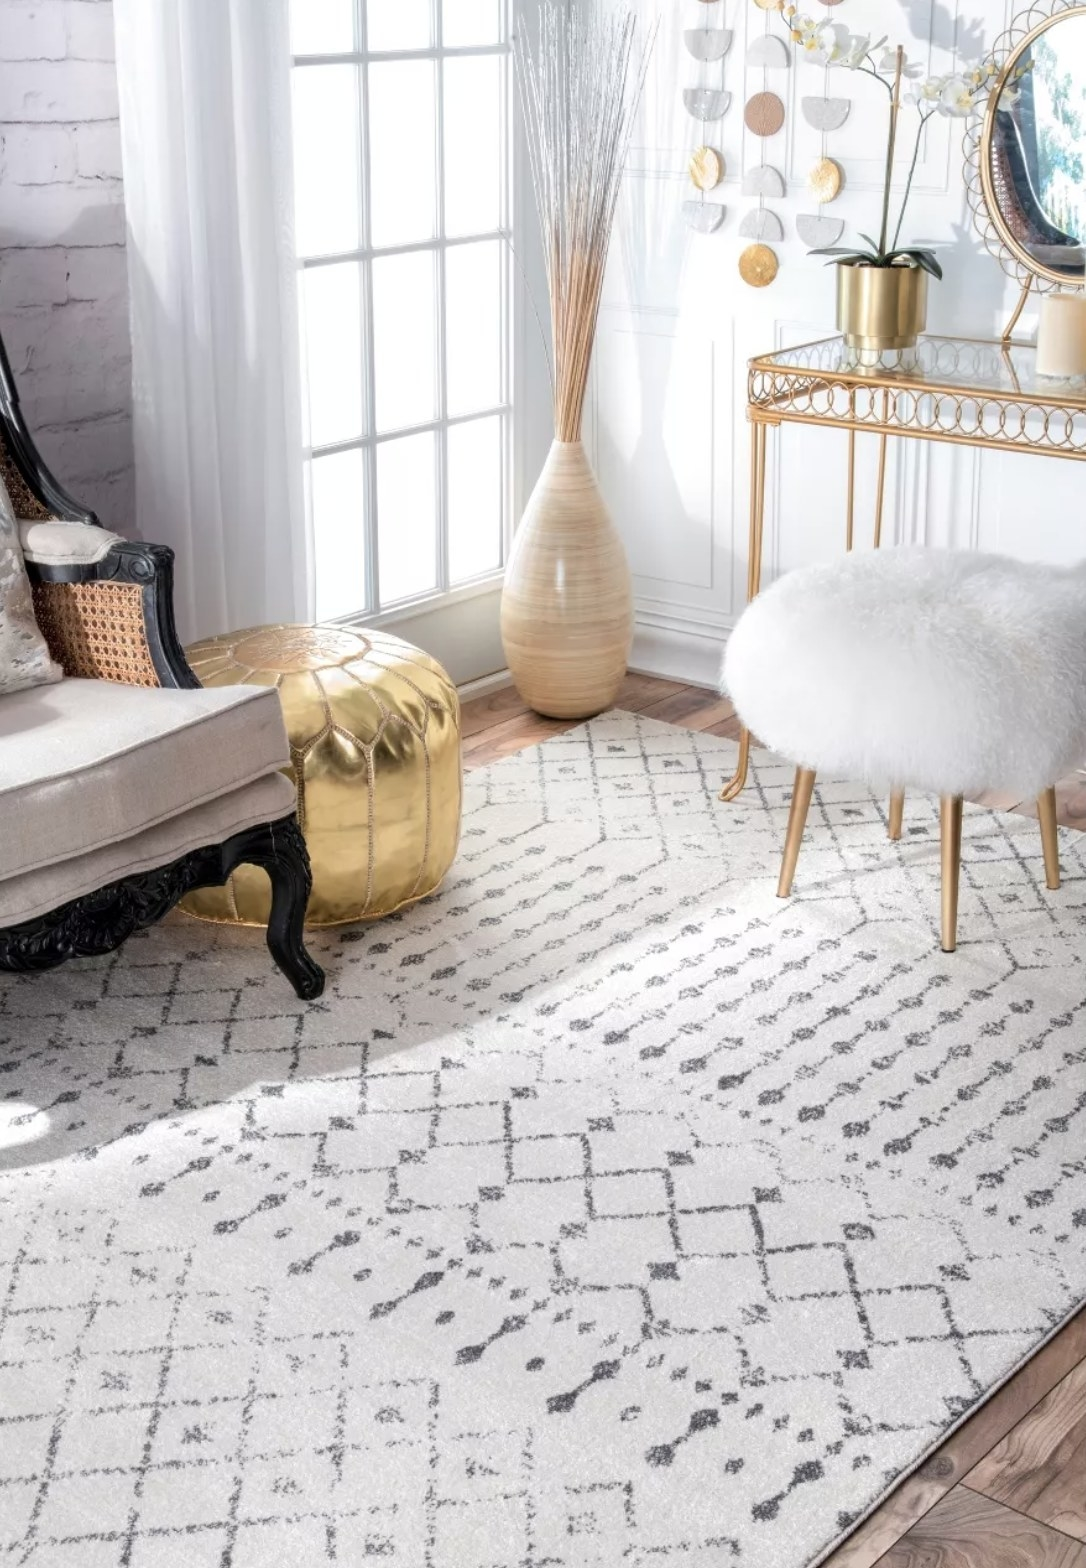 A white area rug with faded black details